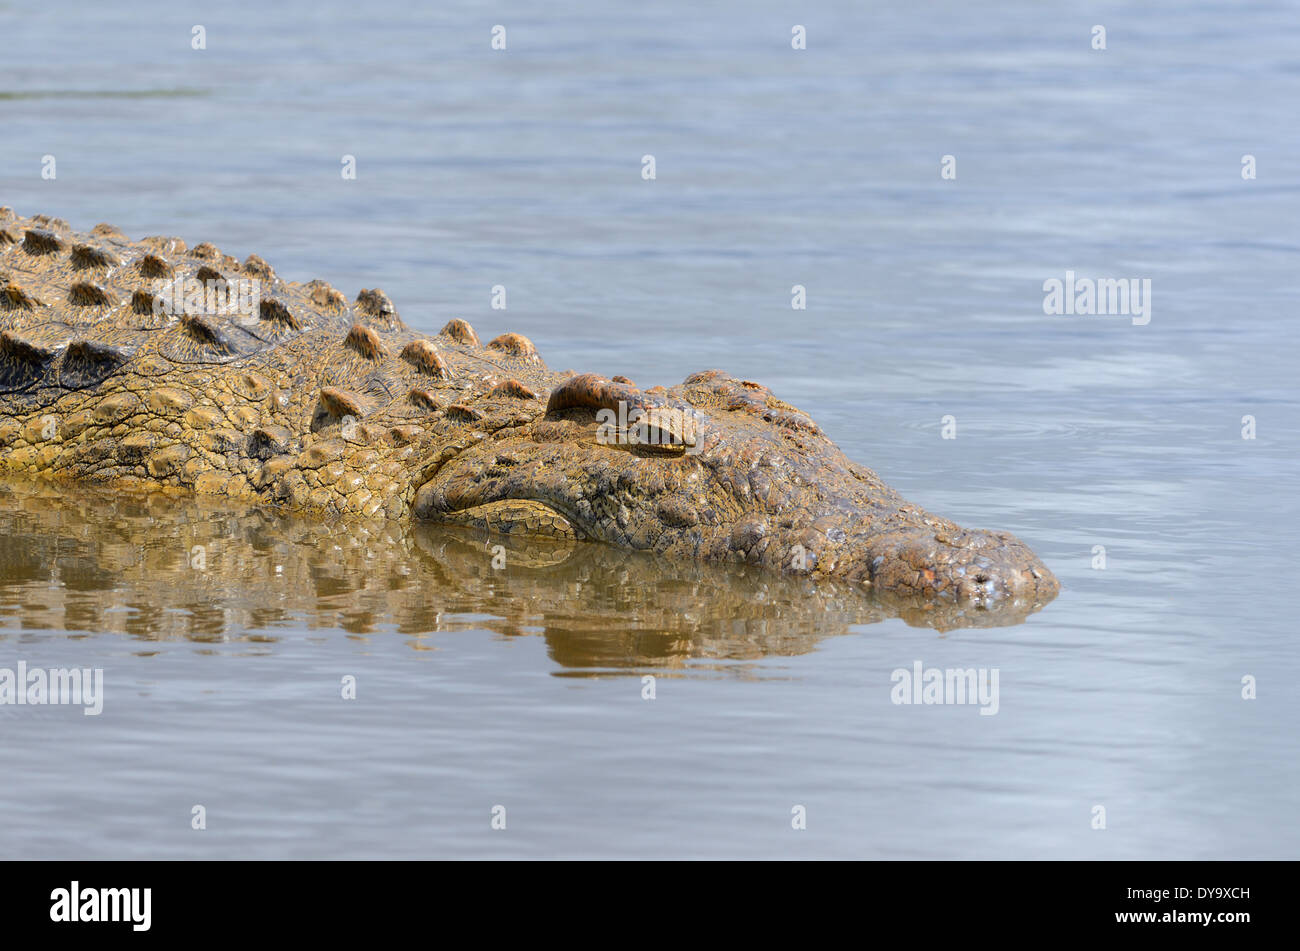 Nile crocodile (Crocodylus niloticus), taking a sun bath in water, Kruger National Park, South Africa, Africa Stock Photo